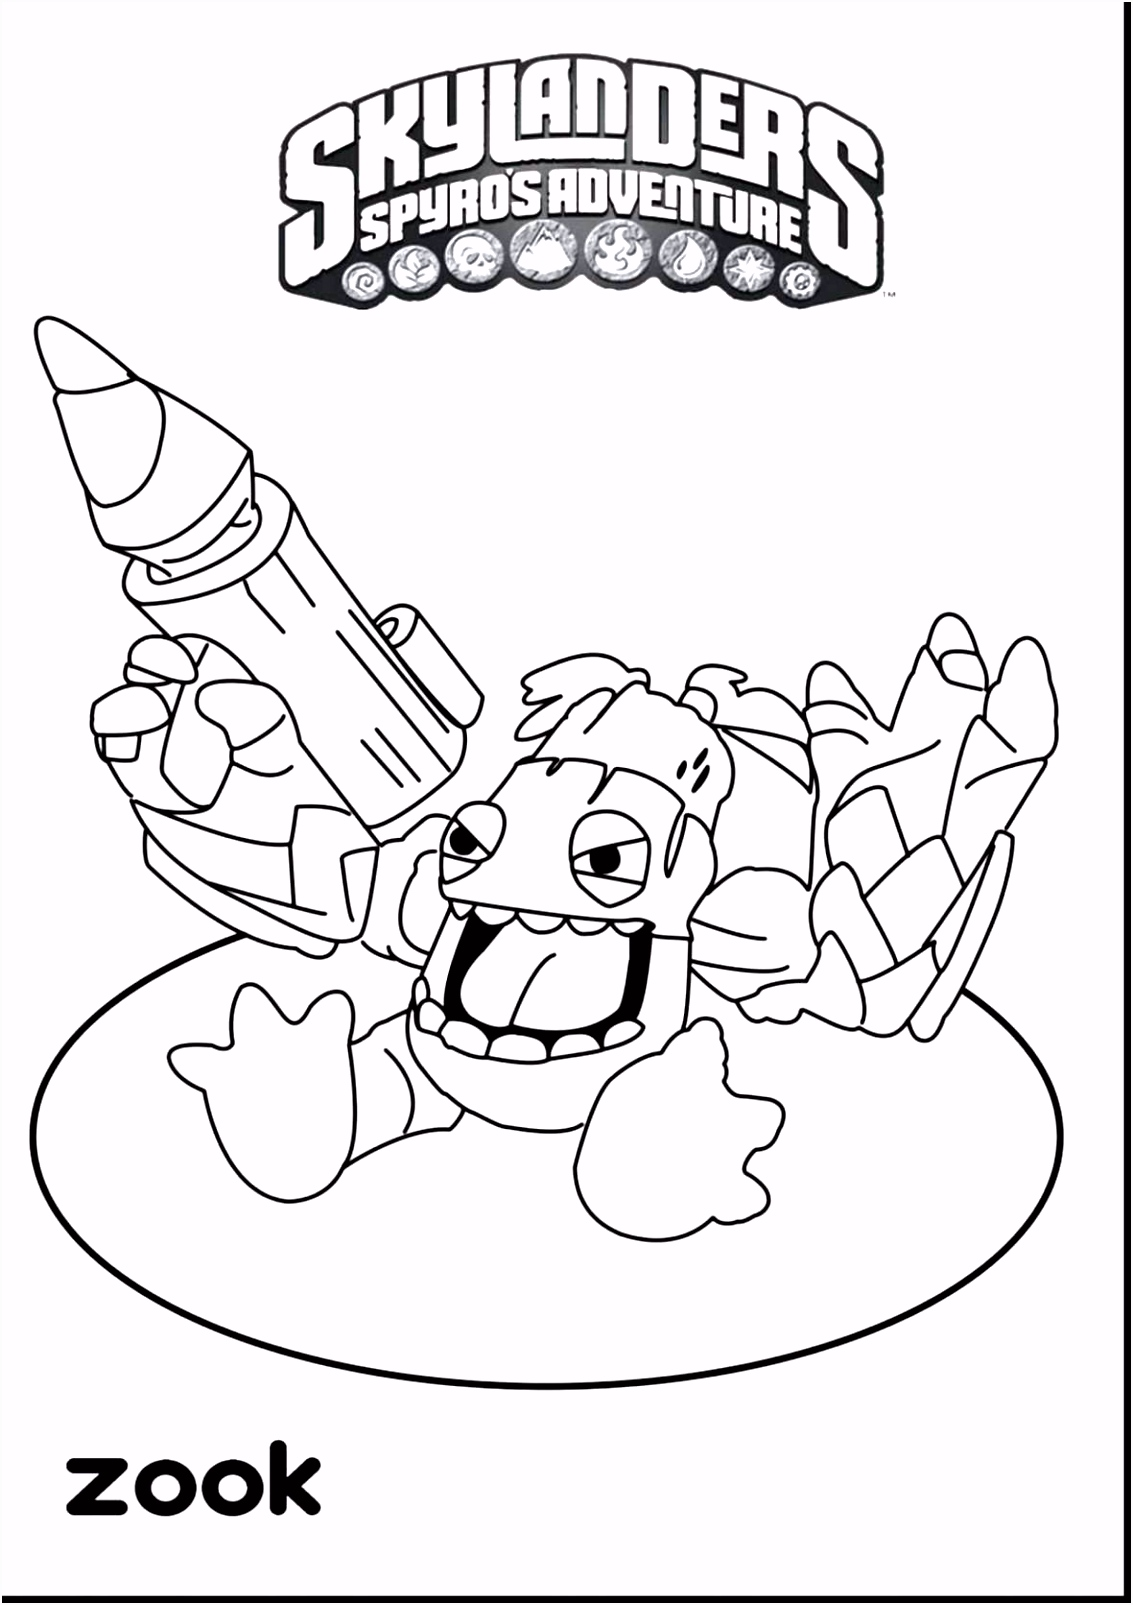 Knight Coloring Pages Princess and the Frog Drawings Free Coloring